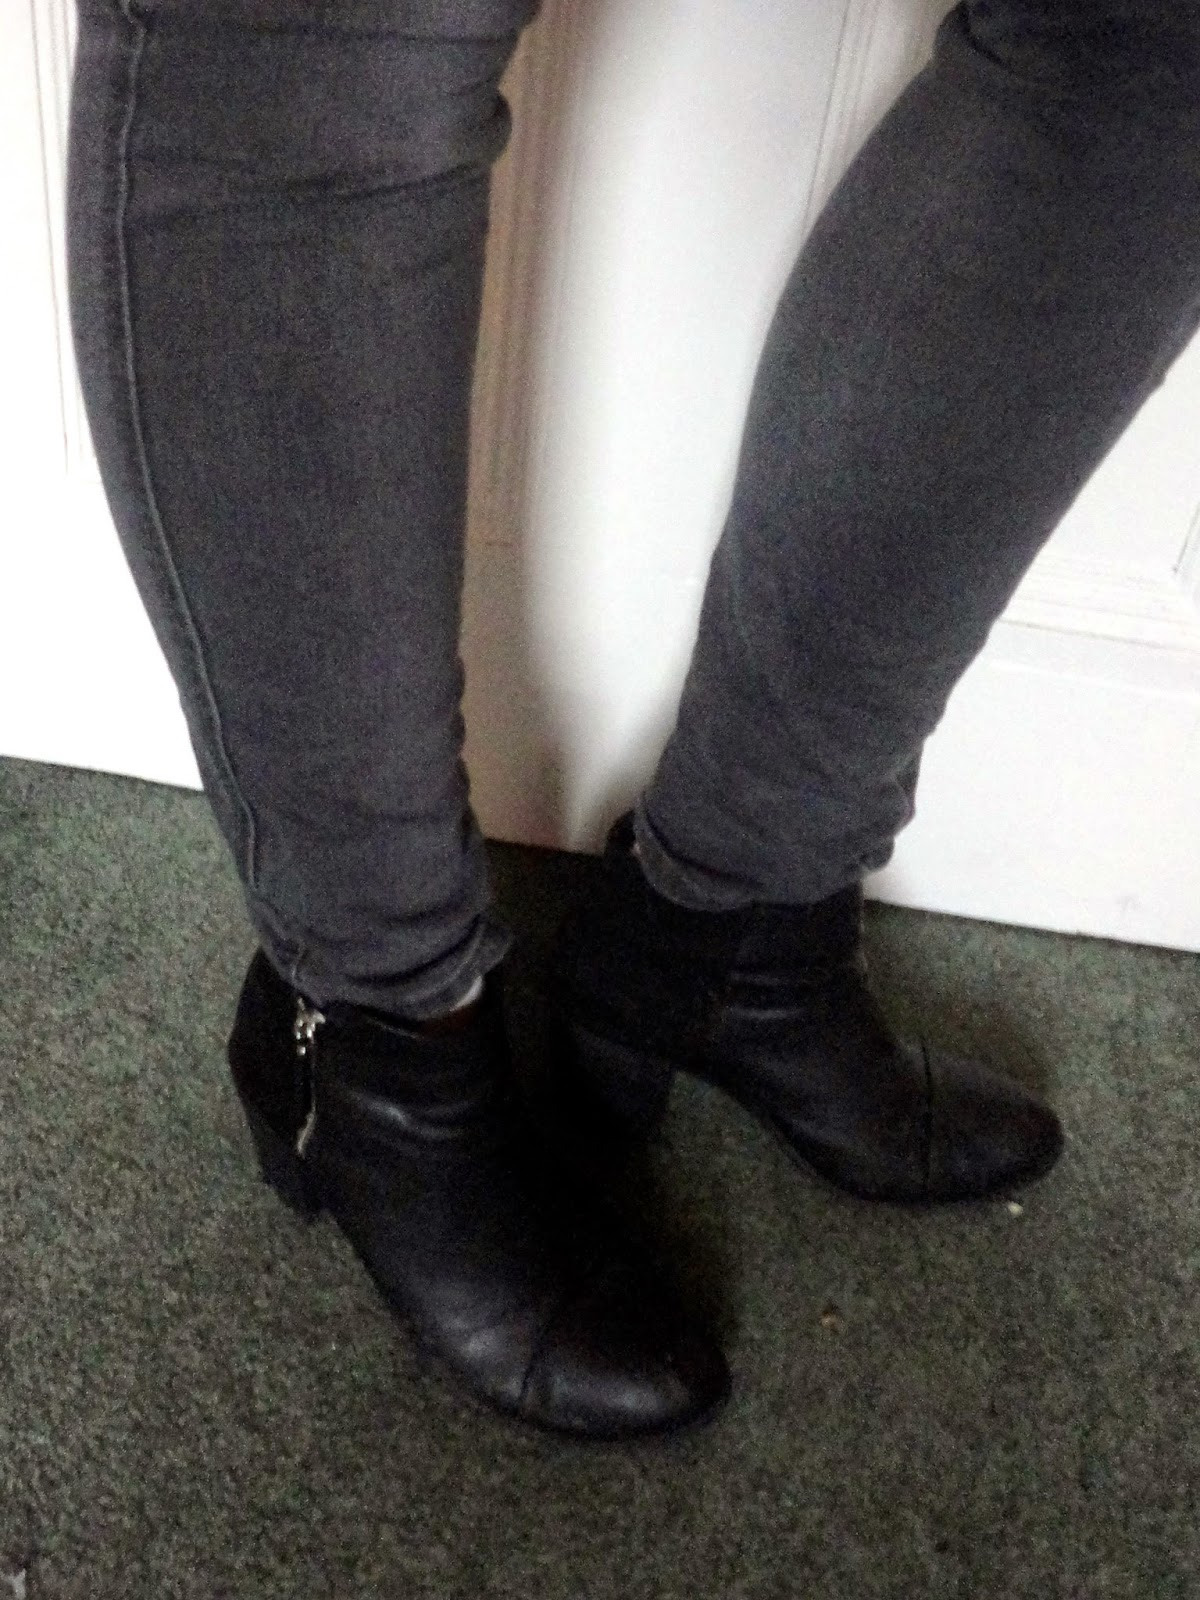 Outfit shoe details - low heel black ankle boots, with grey skinny jeans